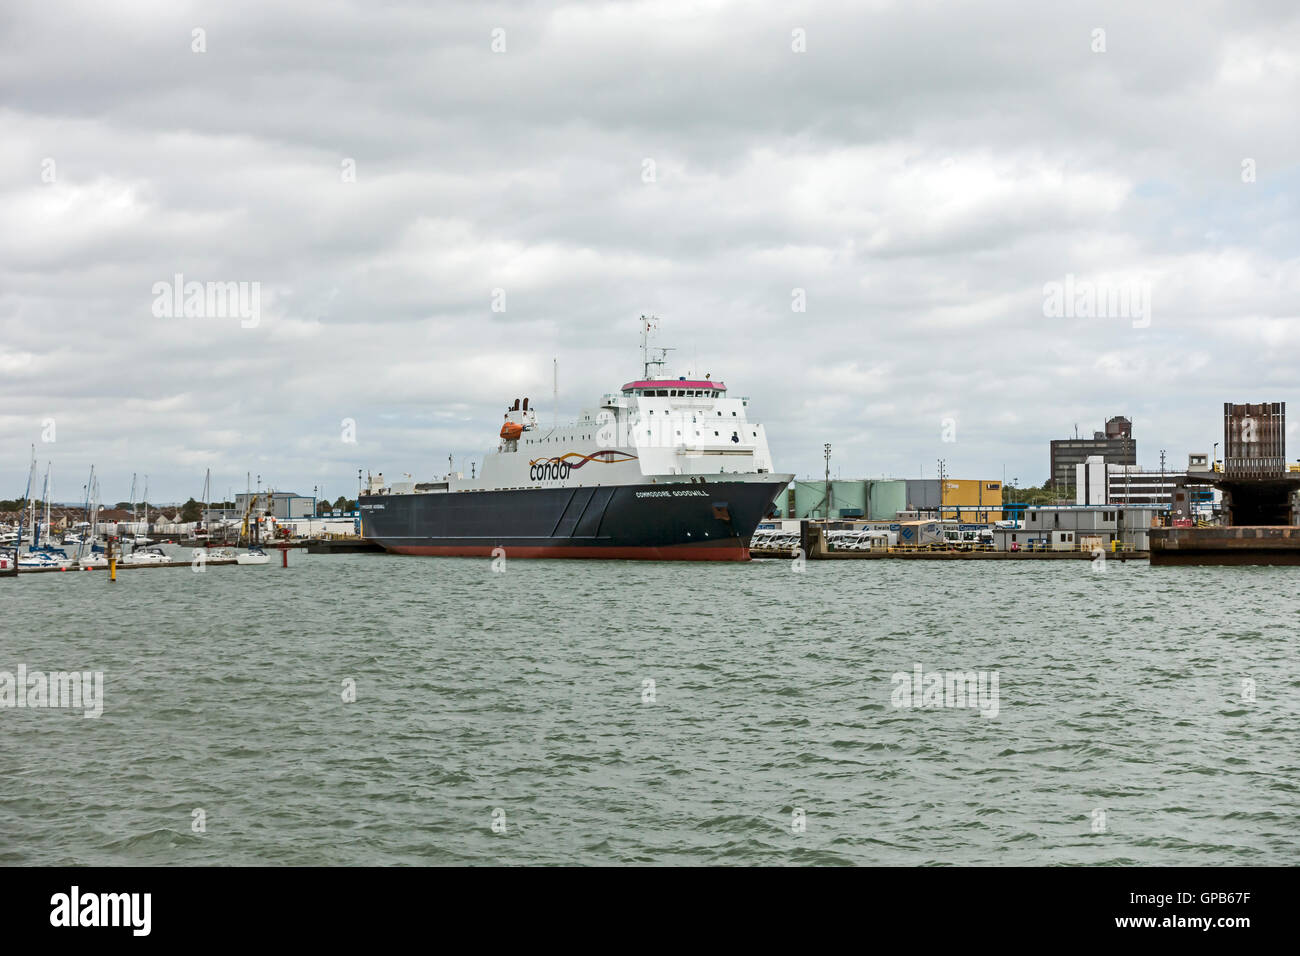 Condor Ferries Commodore Goodwill moored in Portsmouth harbour Portsmouth England - Stock Image